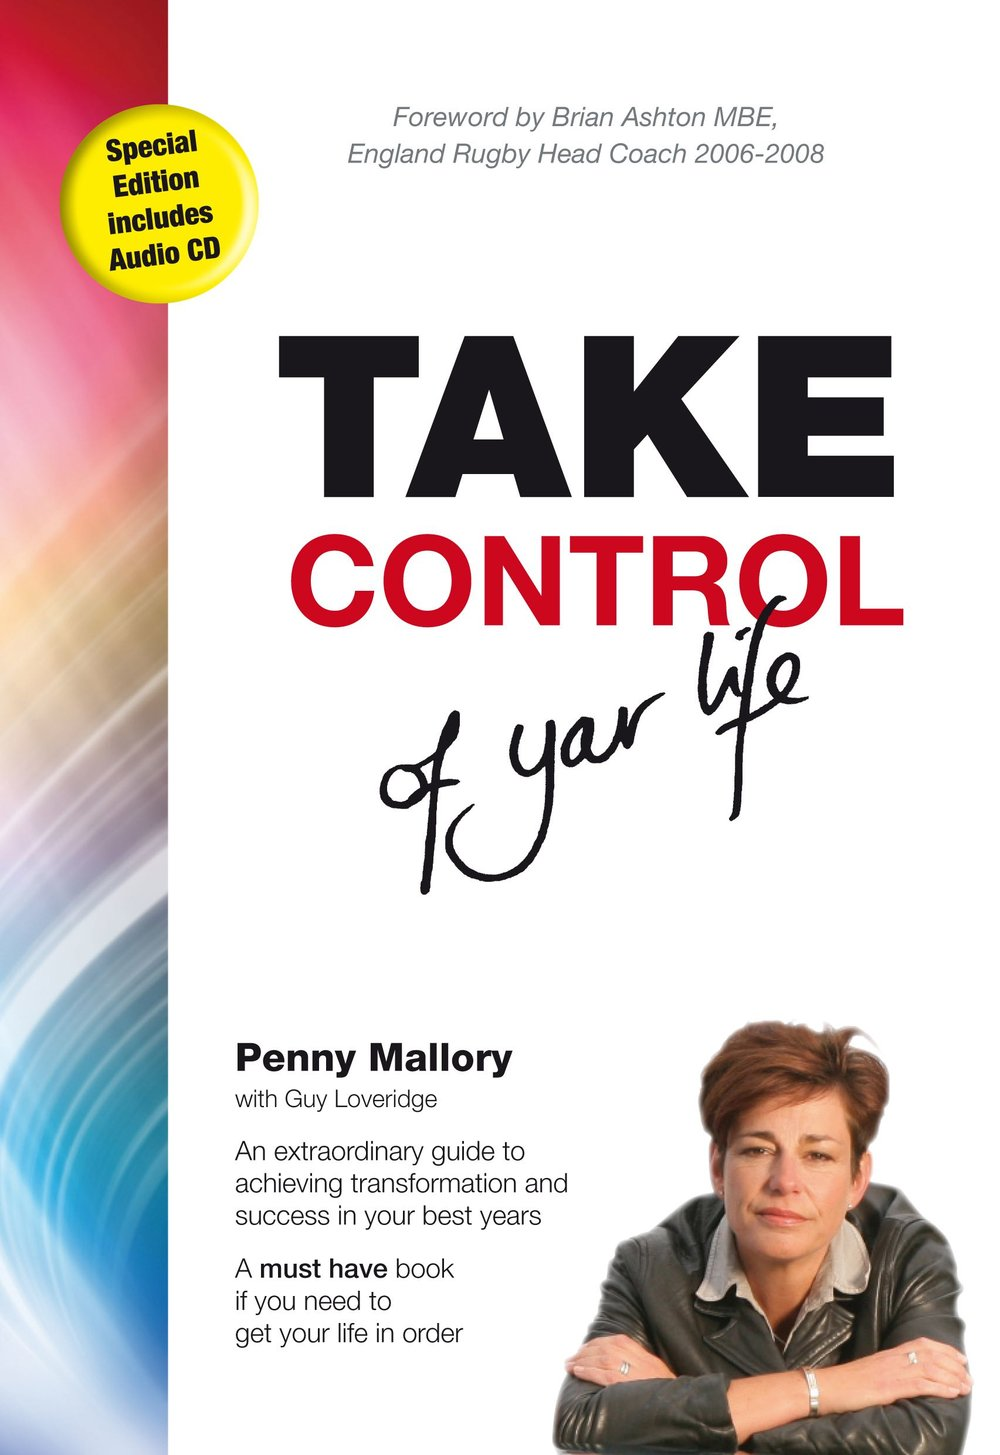 TakeControl cover graphic.jpg